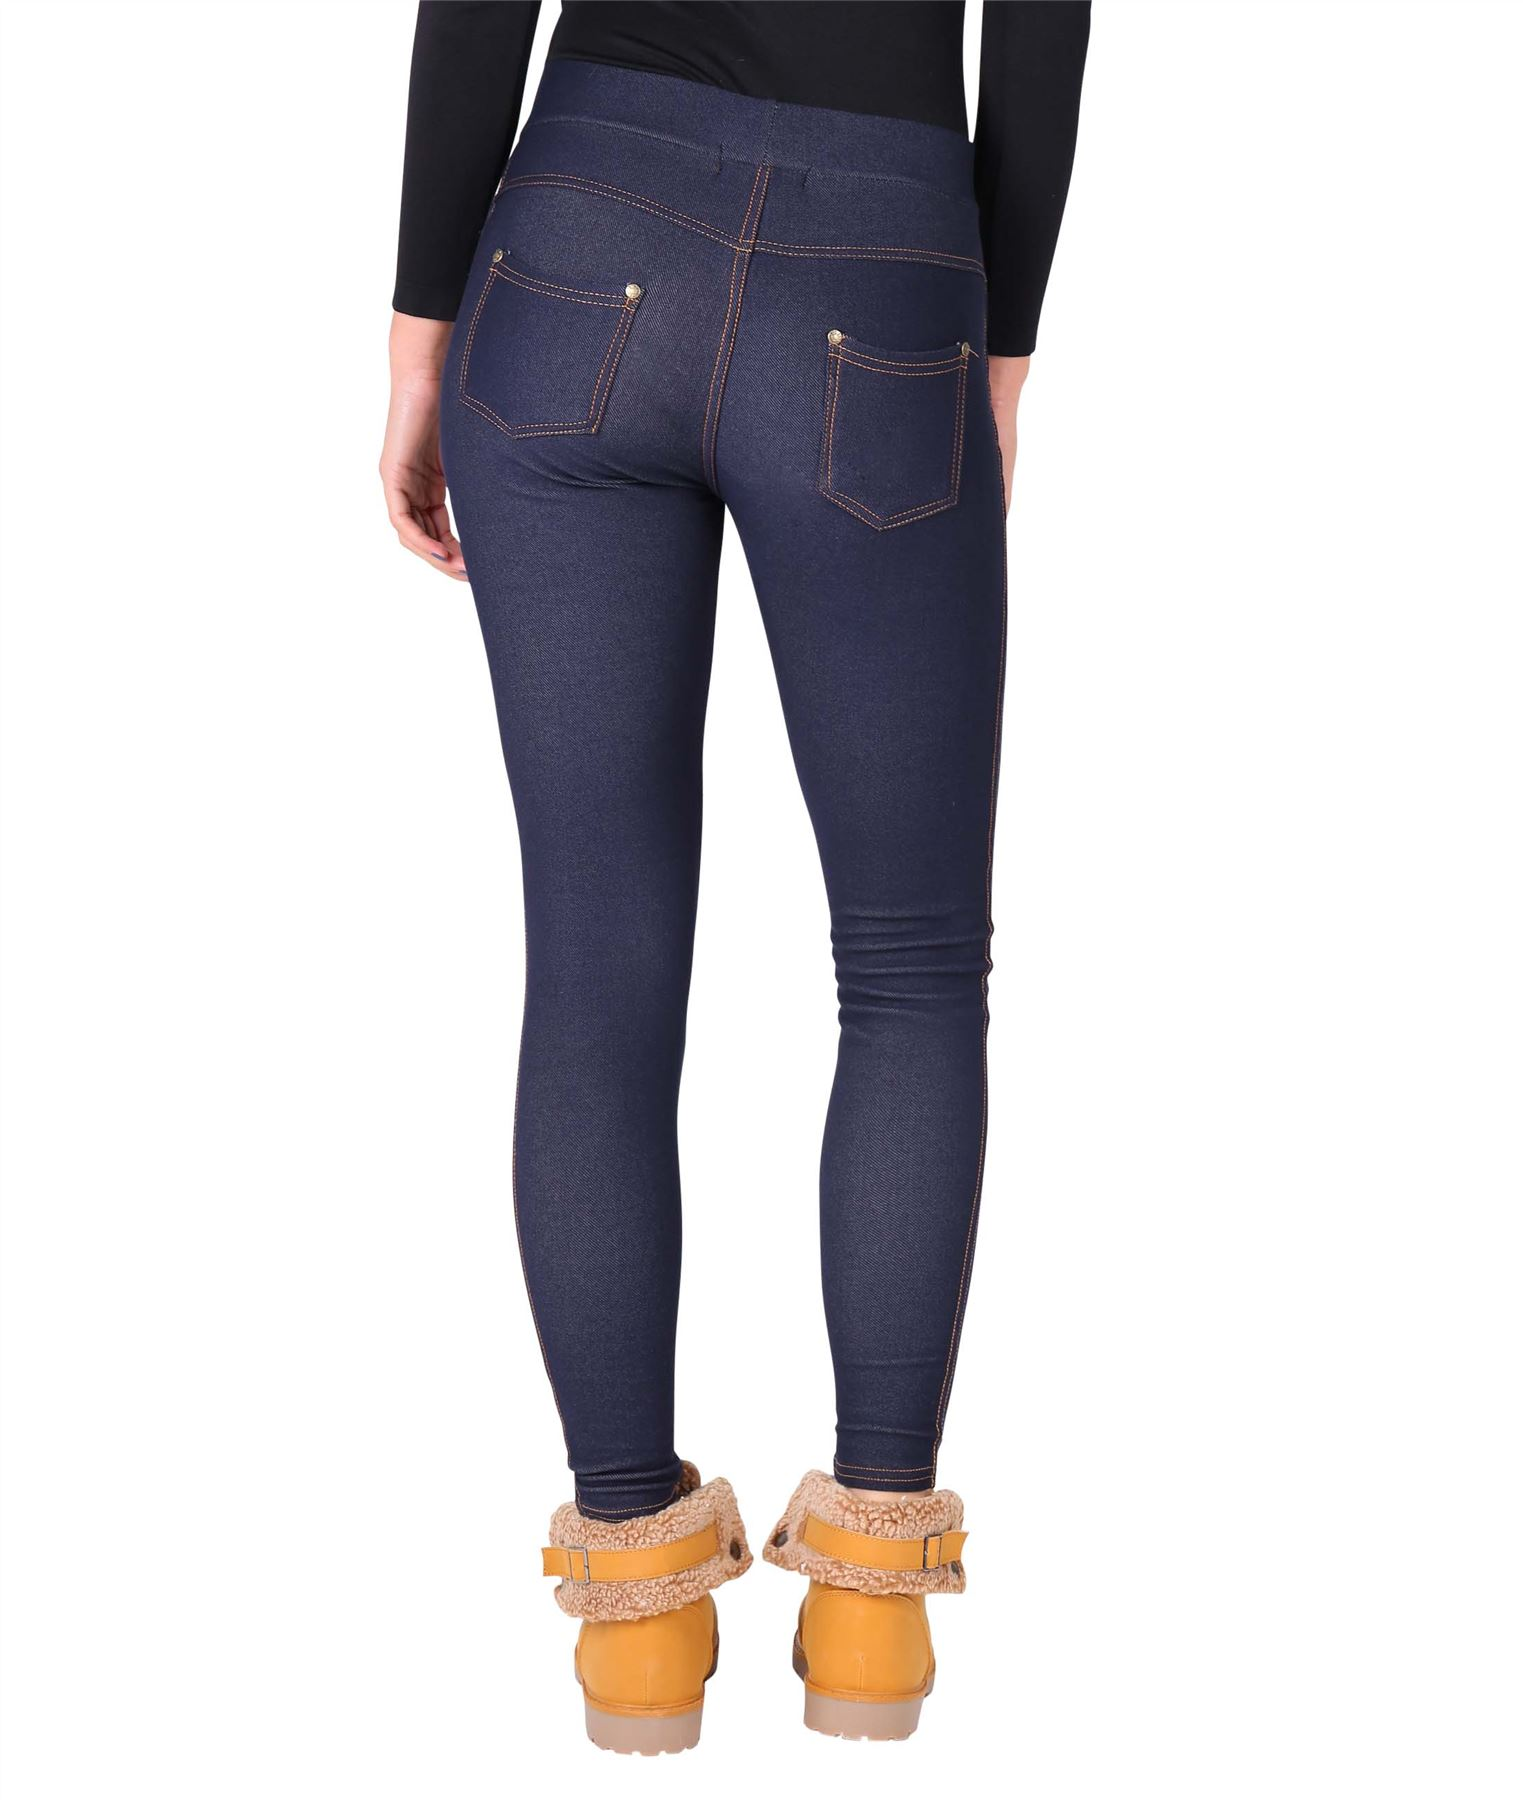 Womens-Warm-Fleece-Lined-Stretch-Denim-Jeans-Thermal-Winter-Leggings-Jeggings thumbnail 24